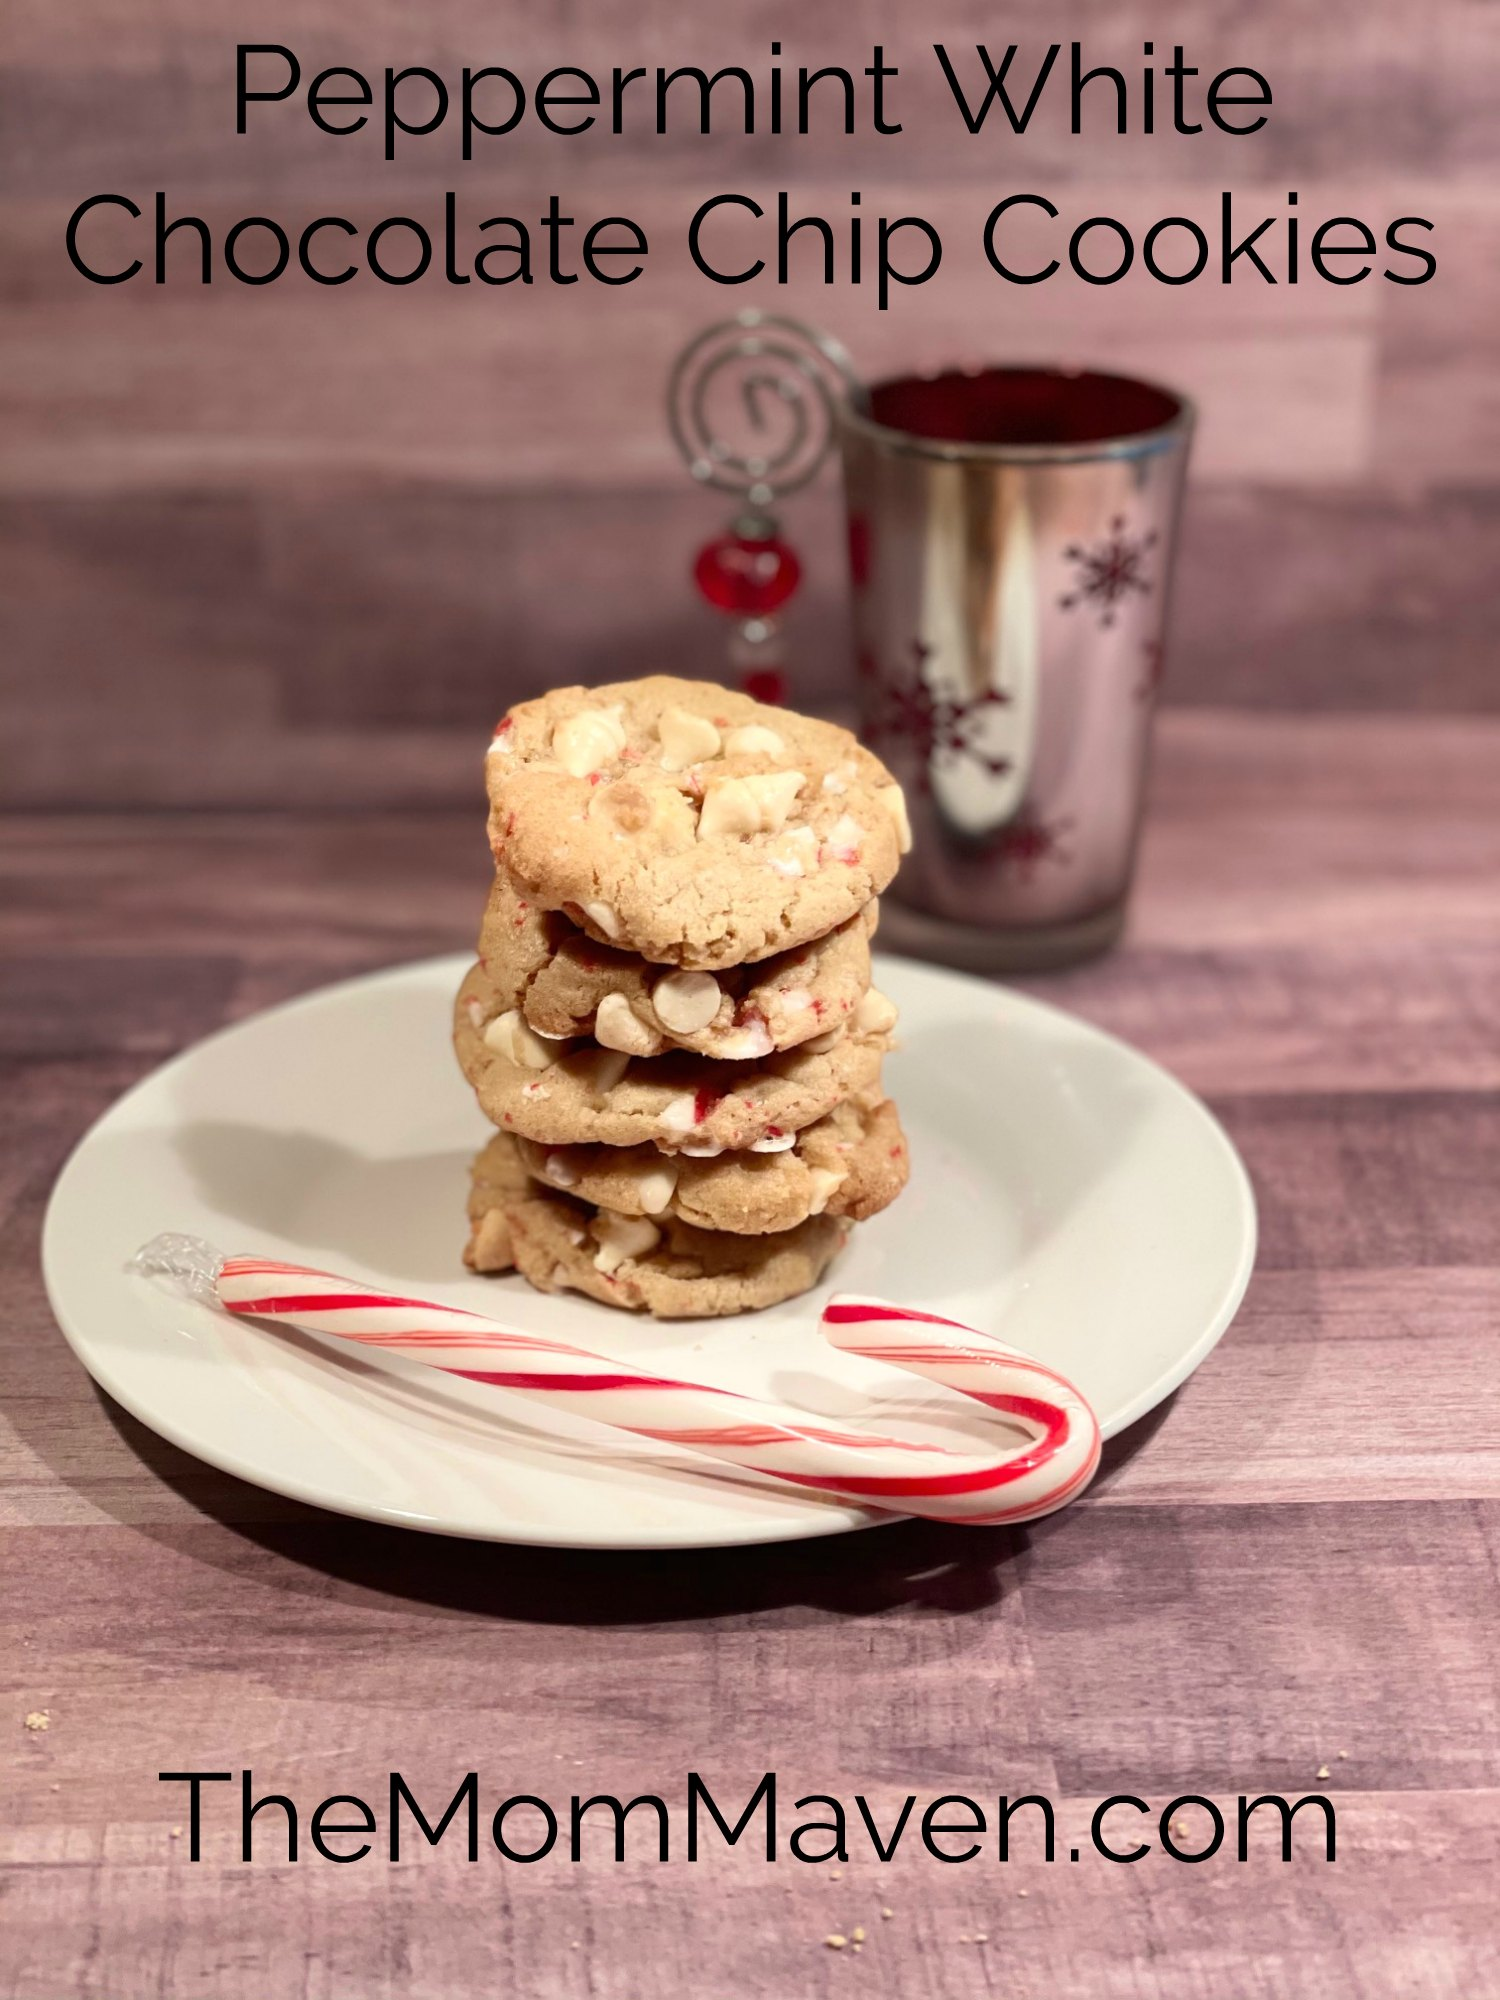 These Peppermint White Chocolate Chip Cookies are soft, delicious, not-too-sweet, and perfect for all your holiday gatherings!